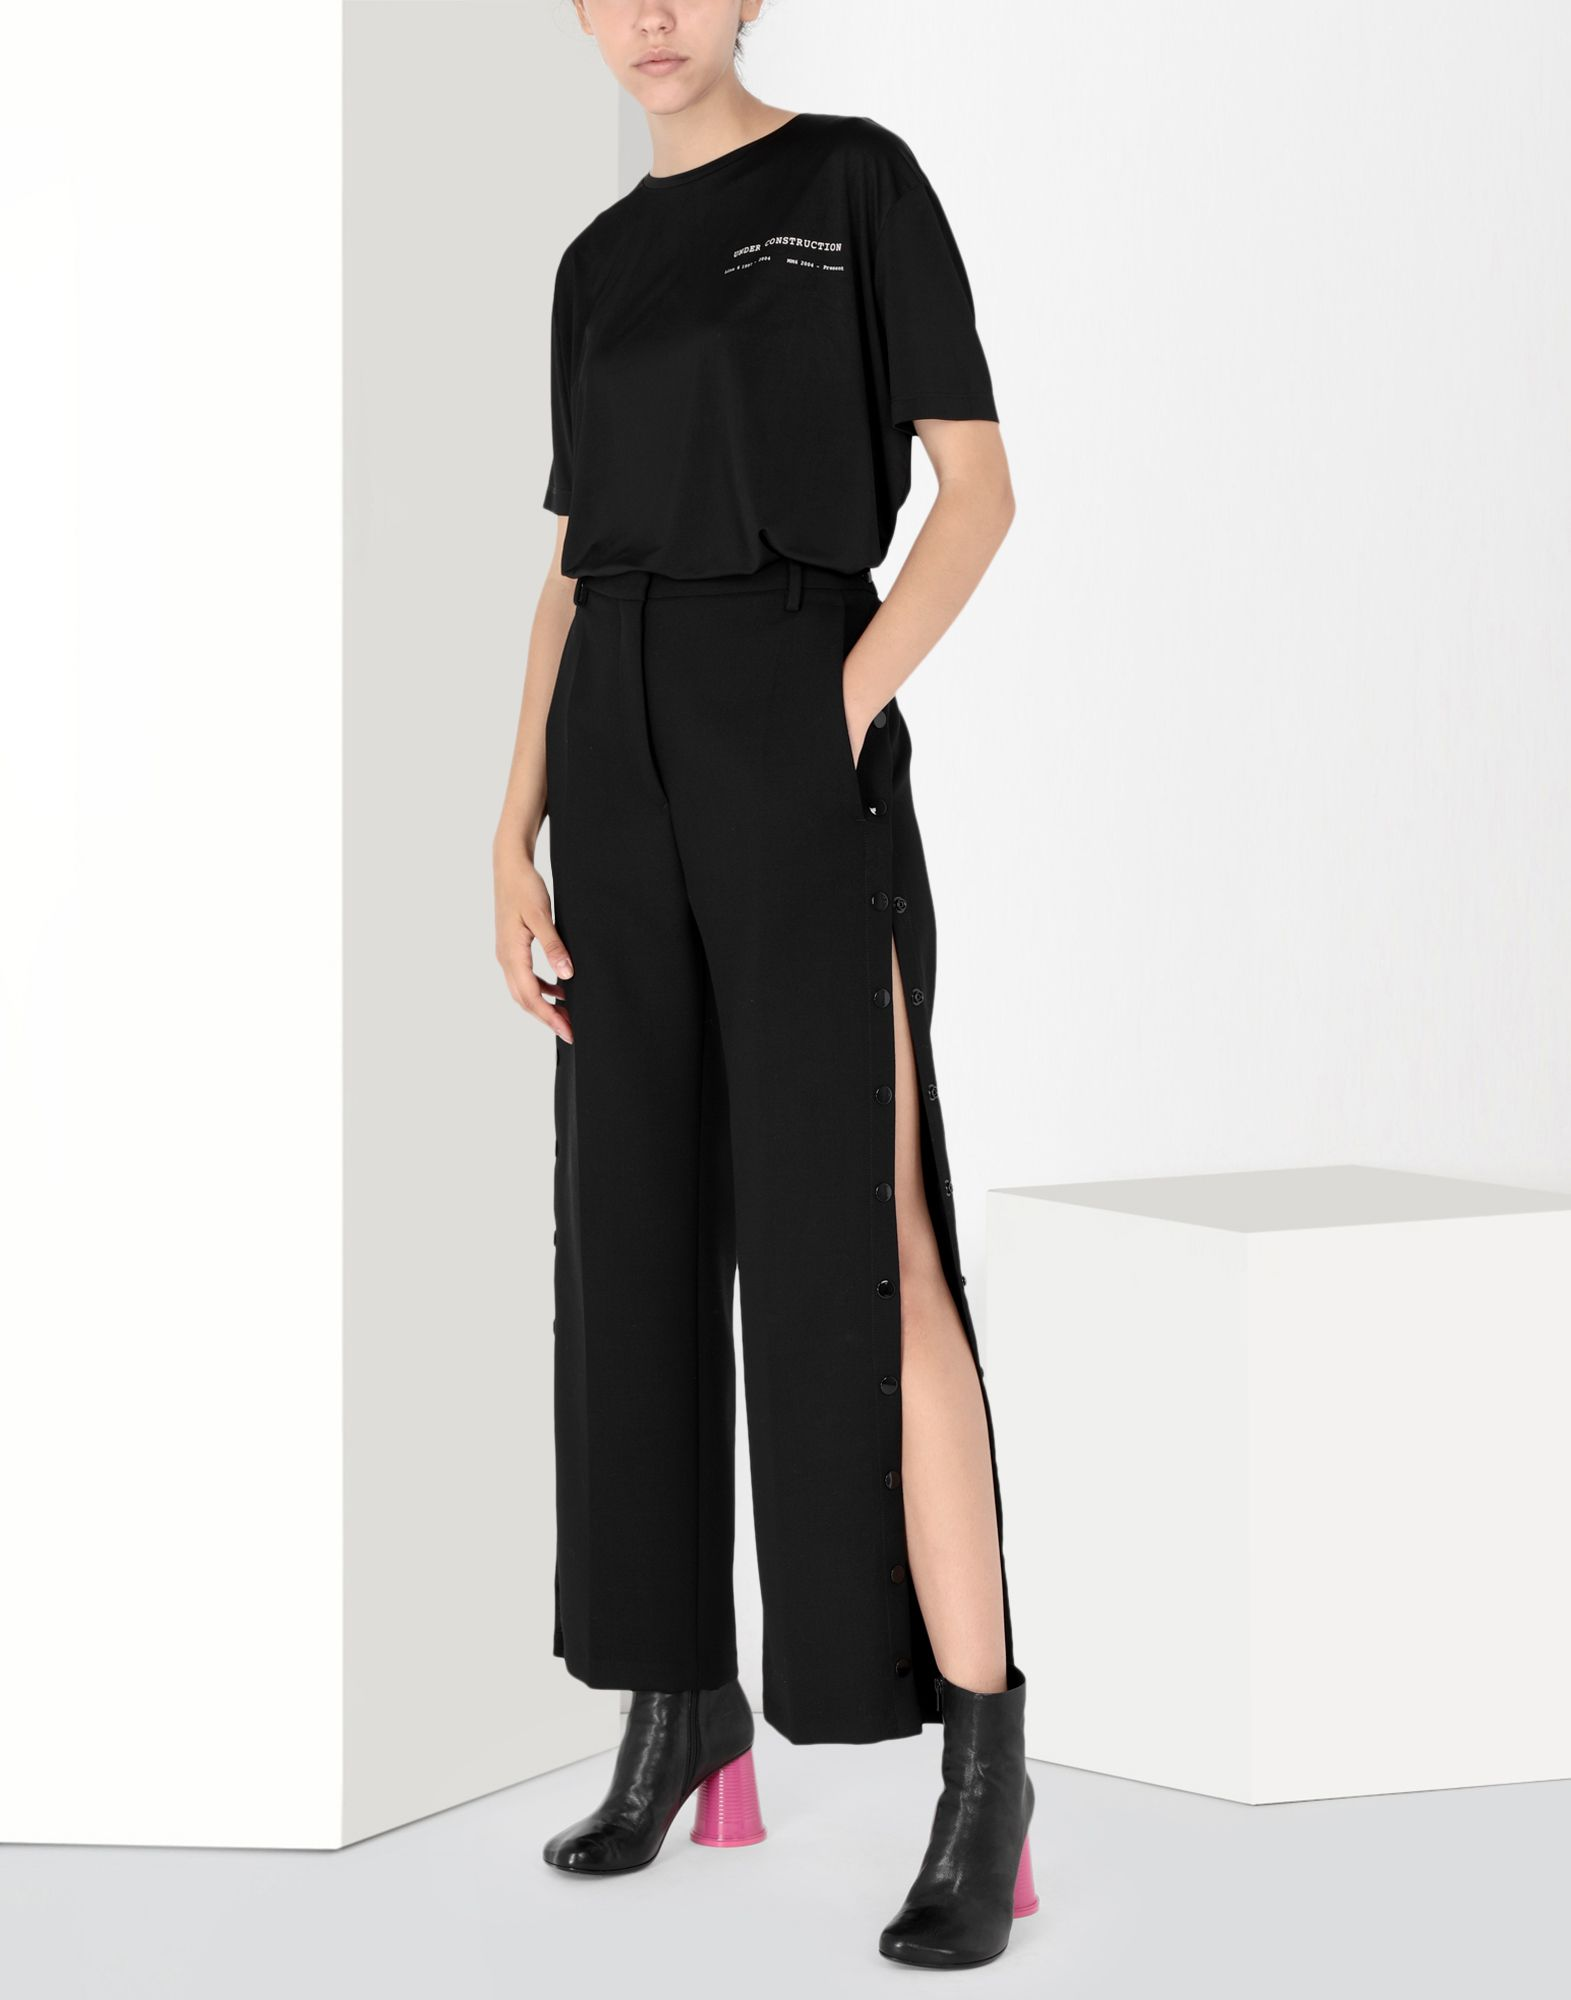 MM6 MAISON MARGIELA High waisted trousers with side buttons Casual pants Woman r